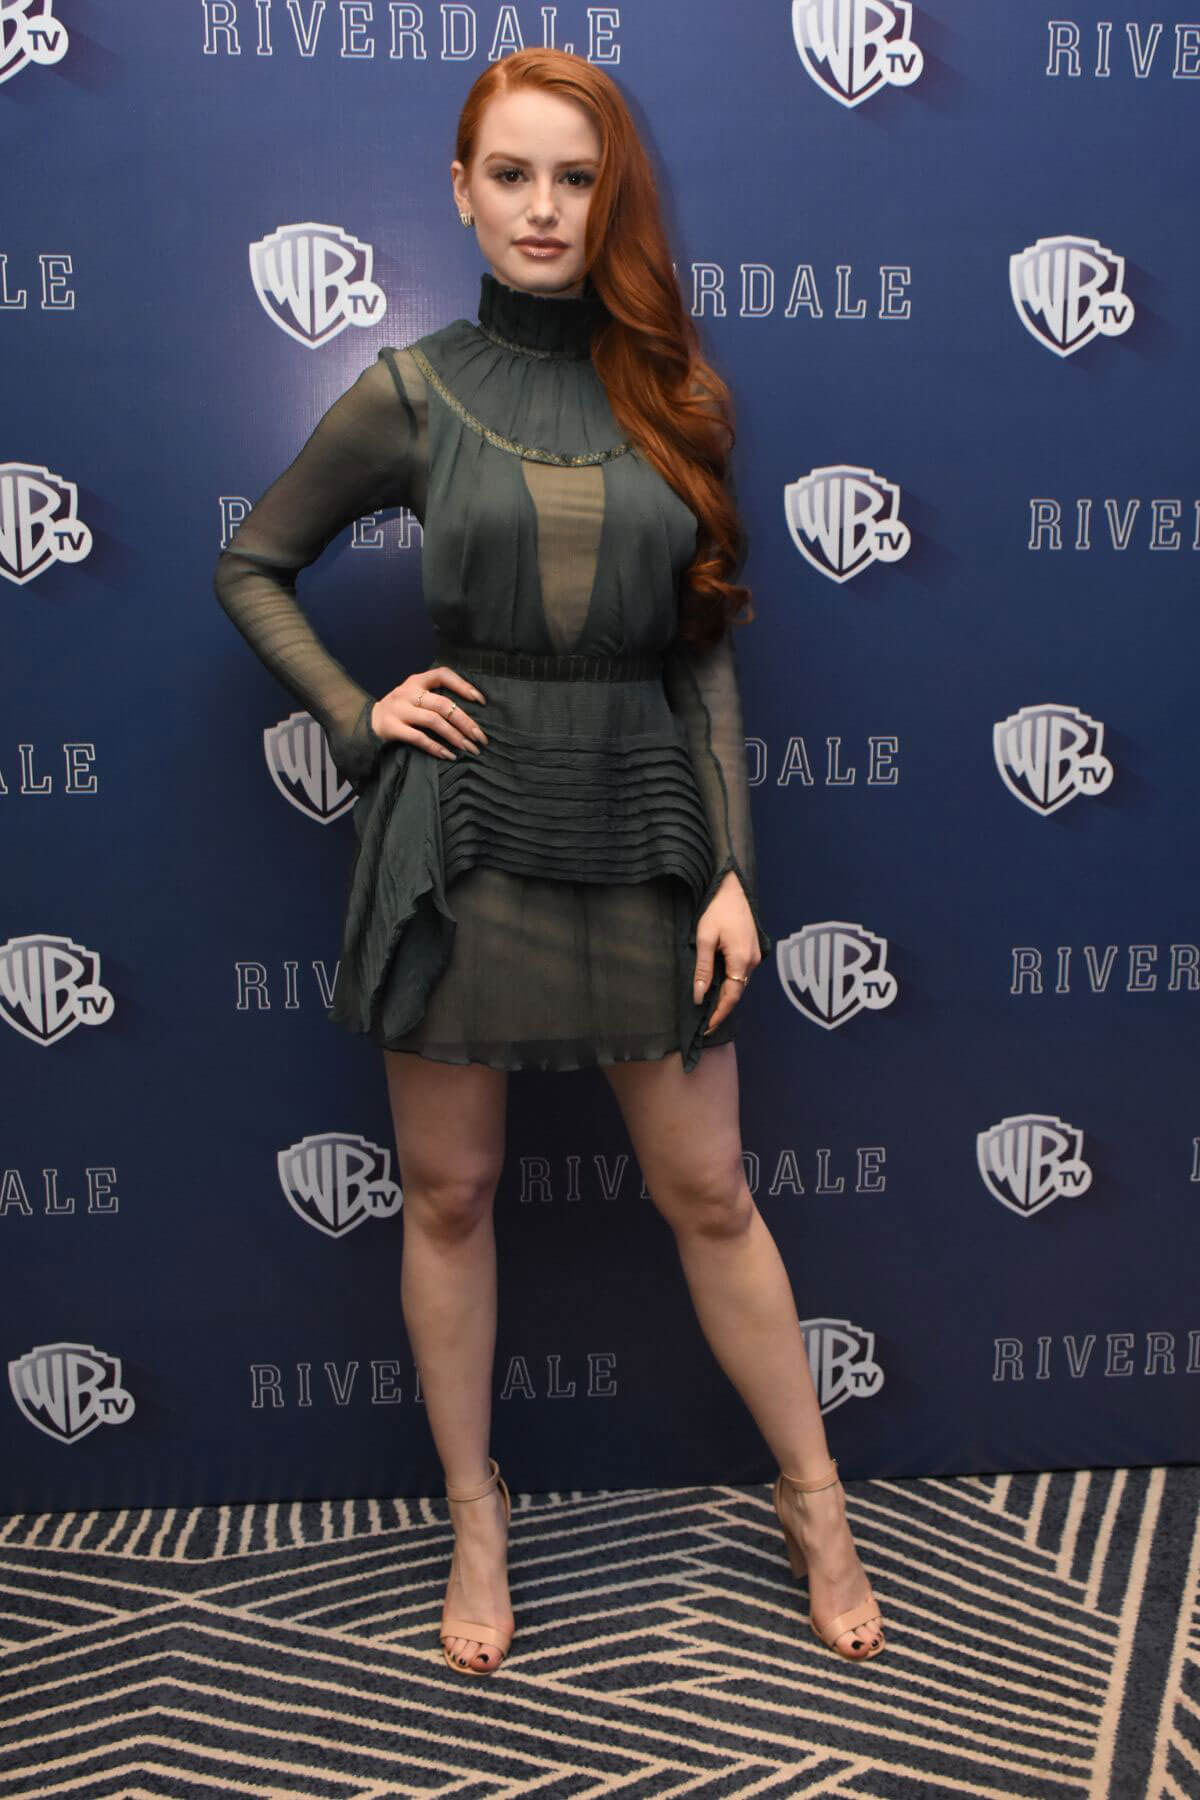 Madelaine Petsch Stills at Riverdale' TV Series Photocall in Mexico City